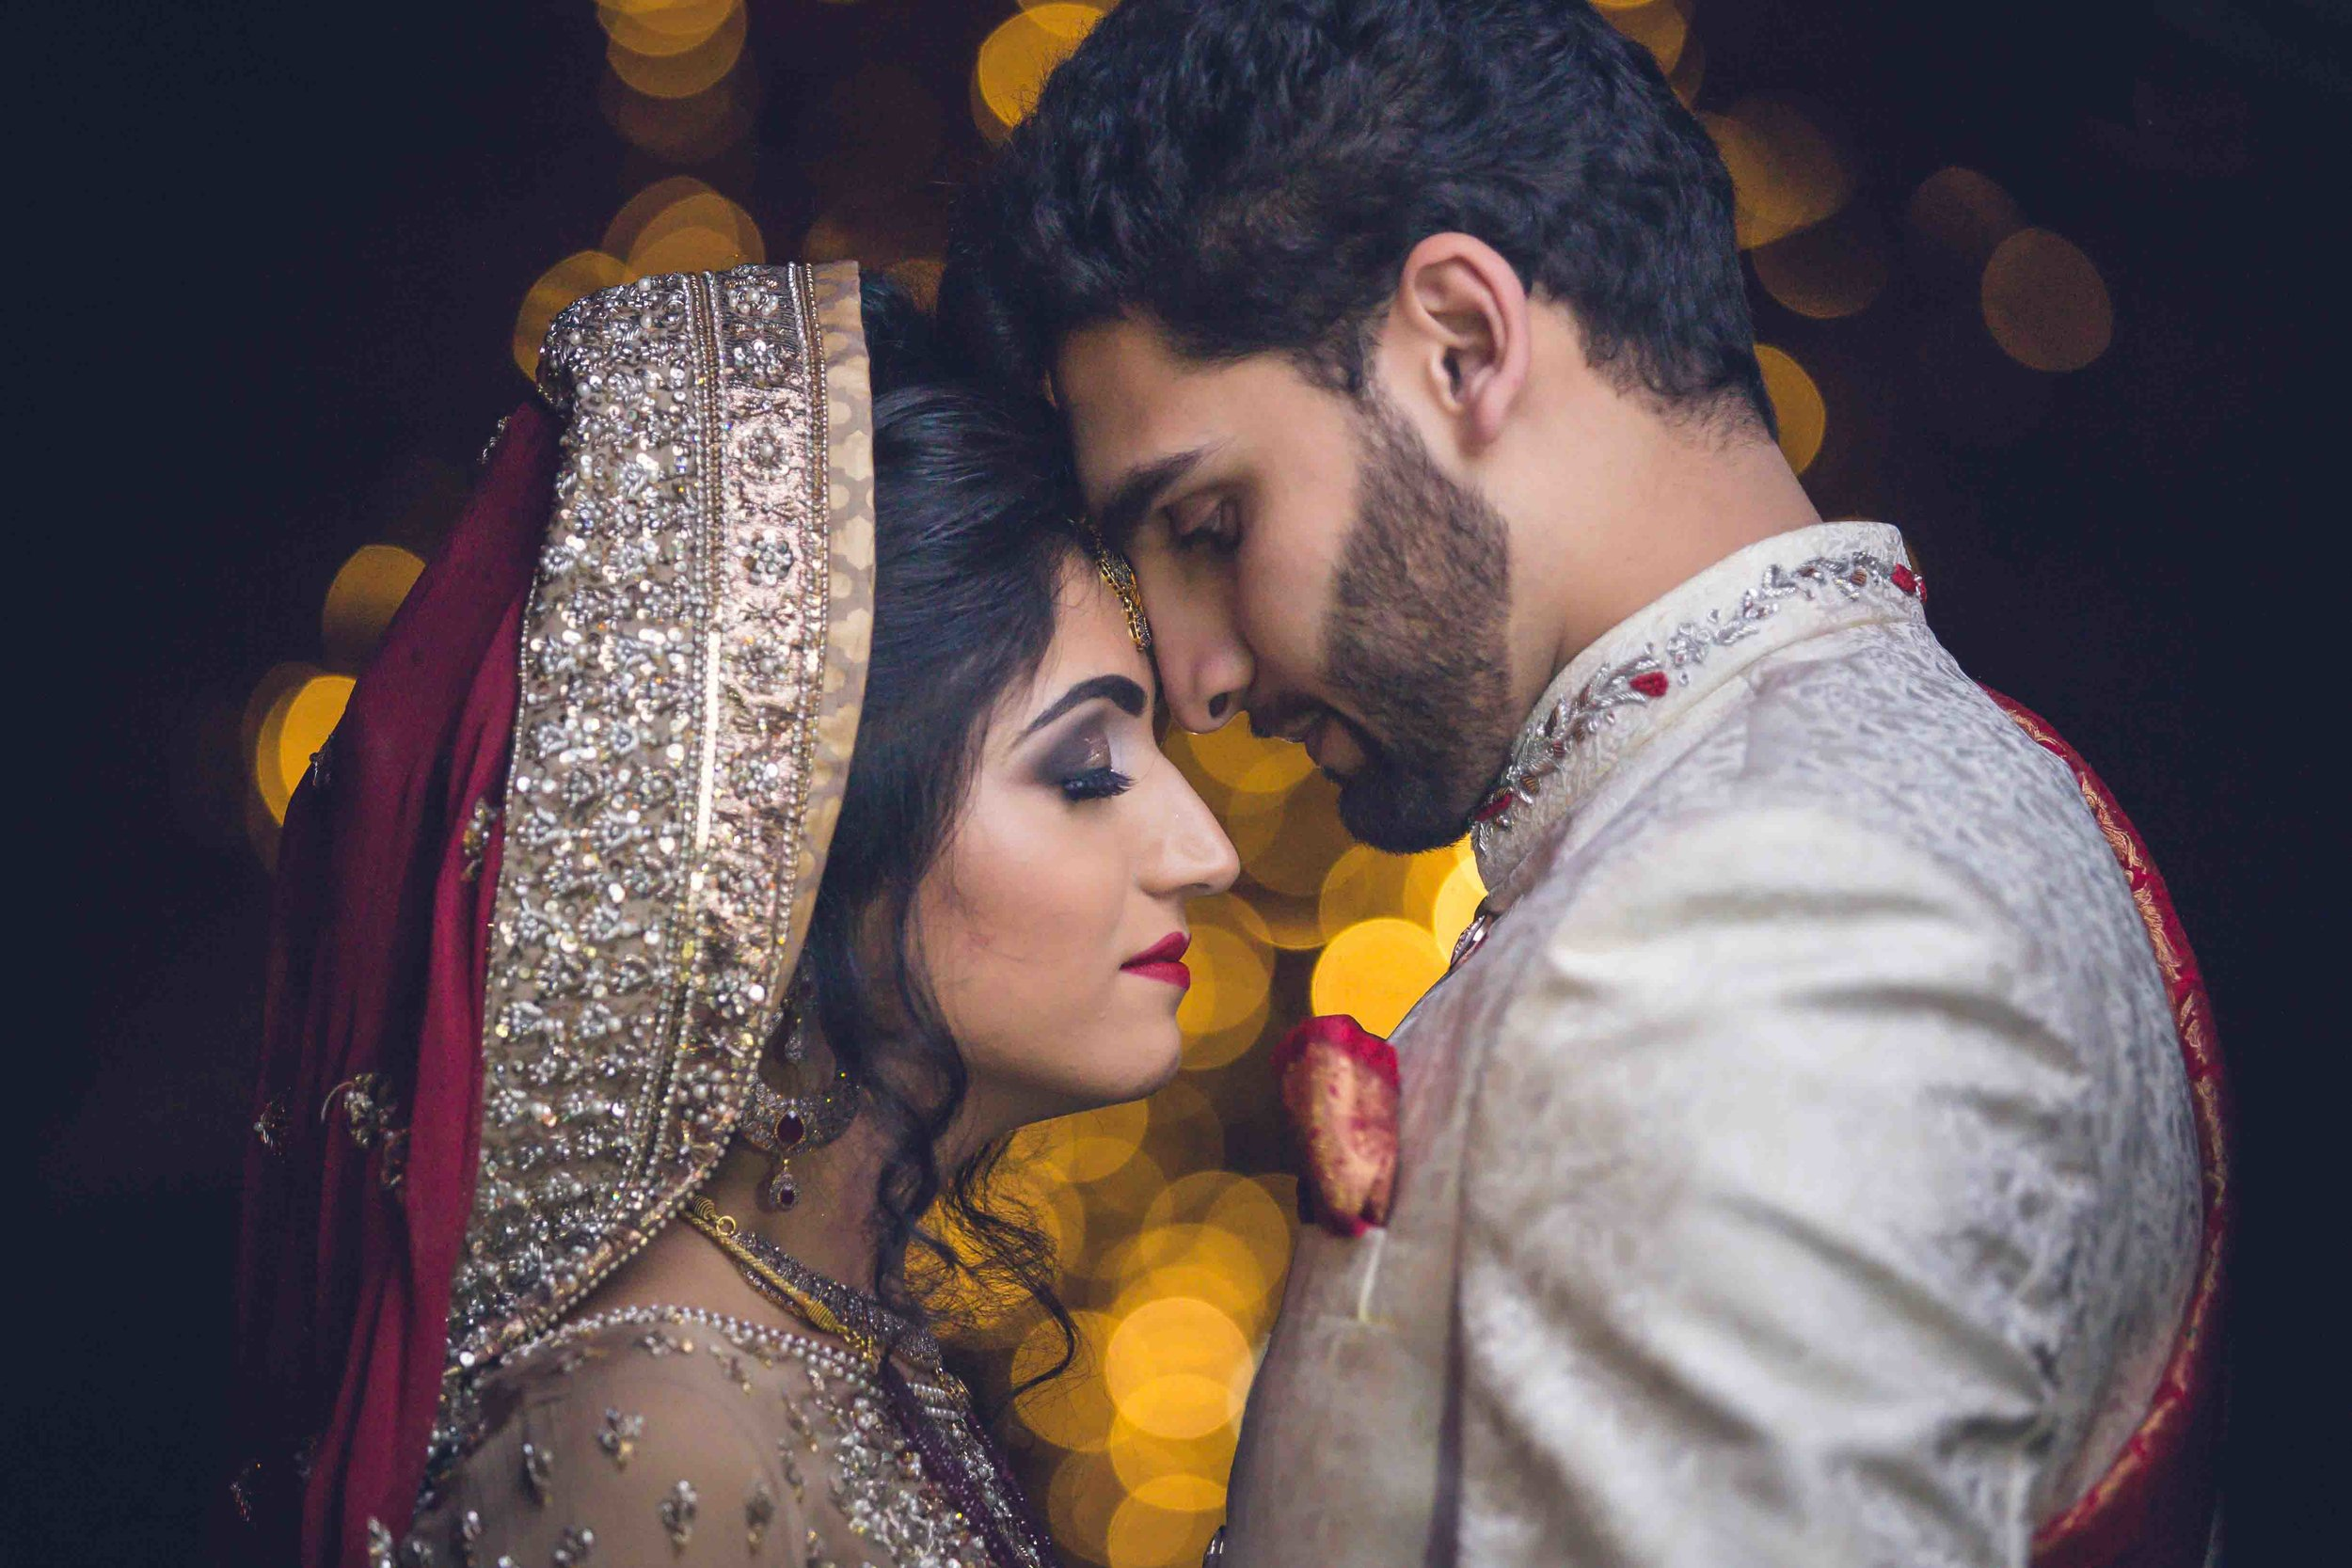 Opu Sultan Photography Asian wedding photography scotland edinburgh glasgow manchester birmingham london-256.jpg